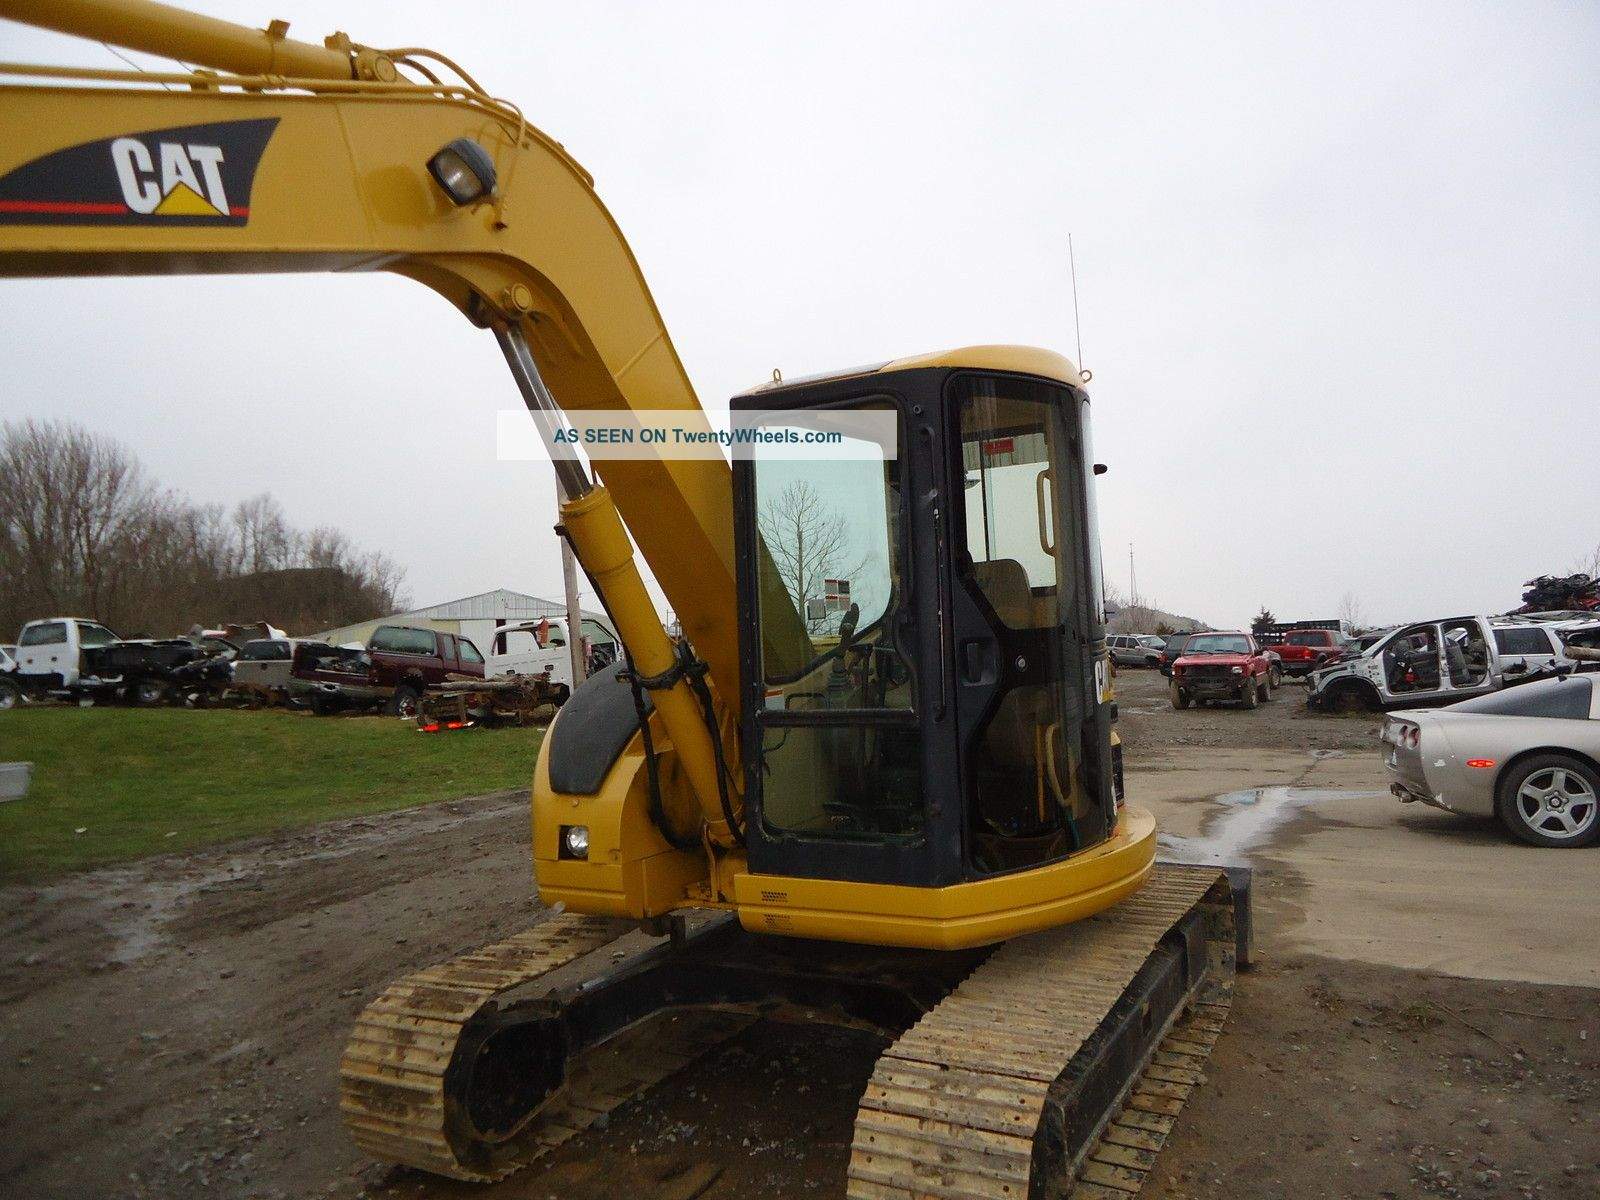 01 308b Cr Cat Caterpillar Excavator Steel Tracks Hoe Loader Excavators photo